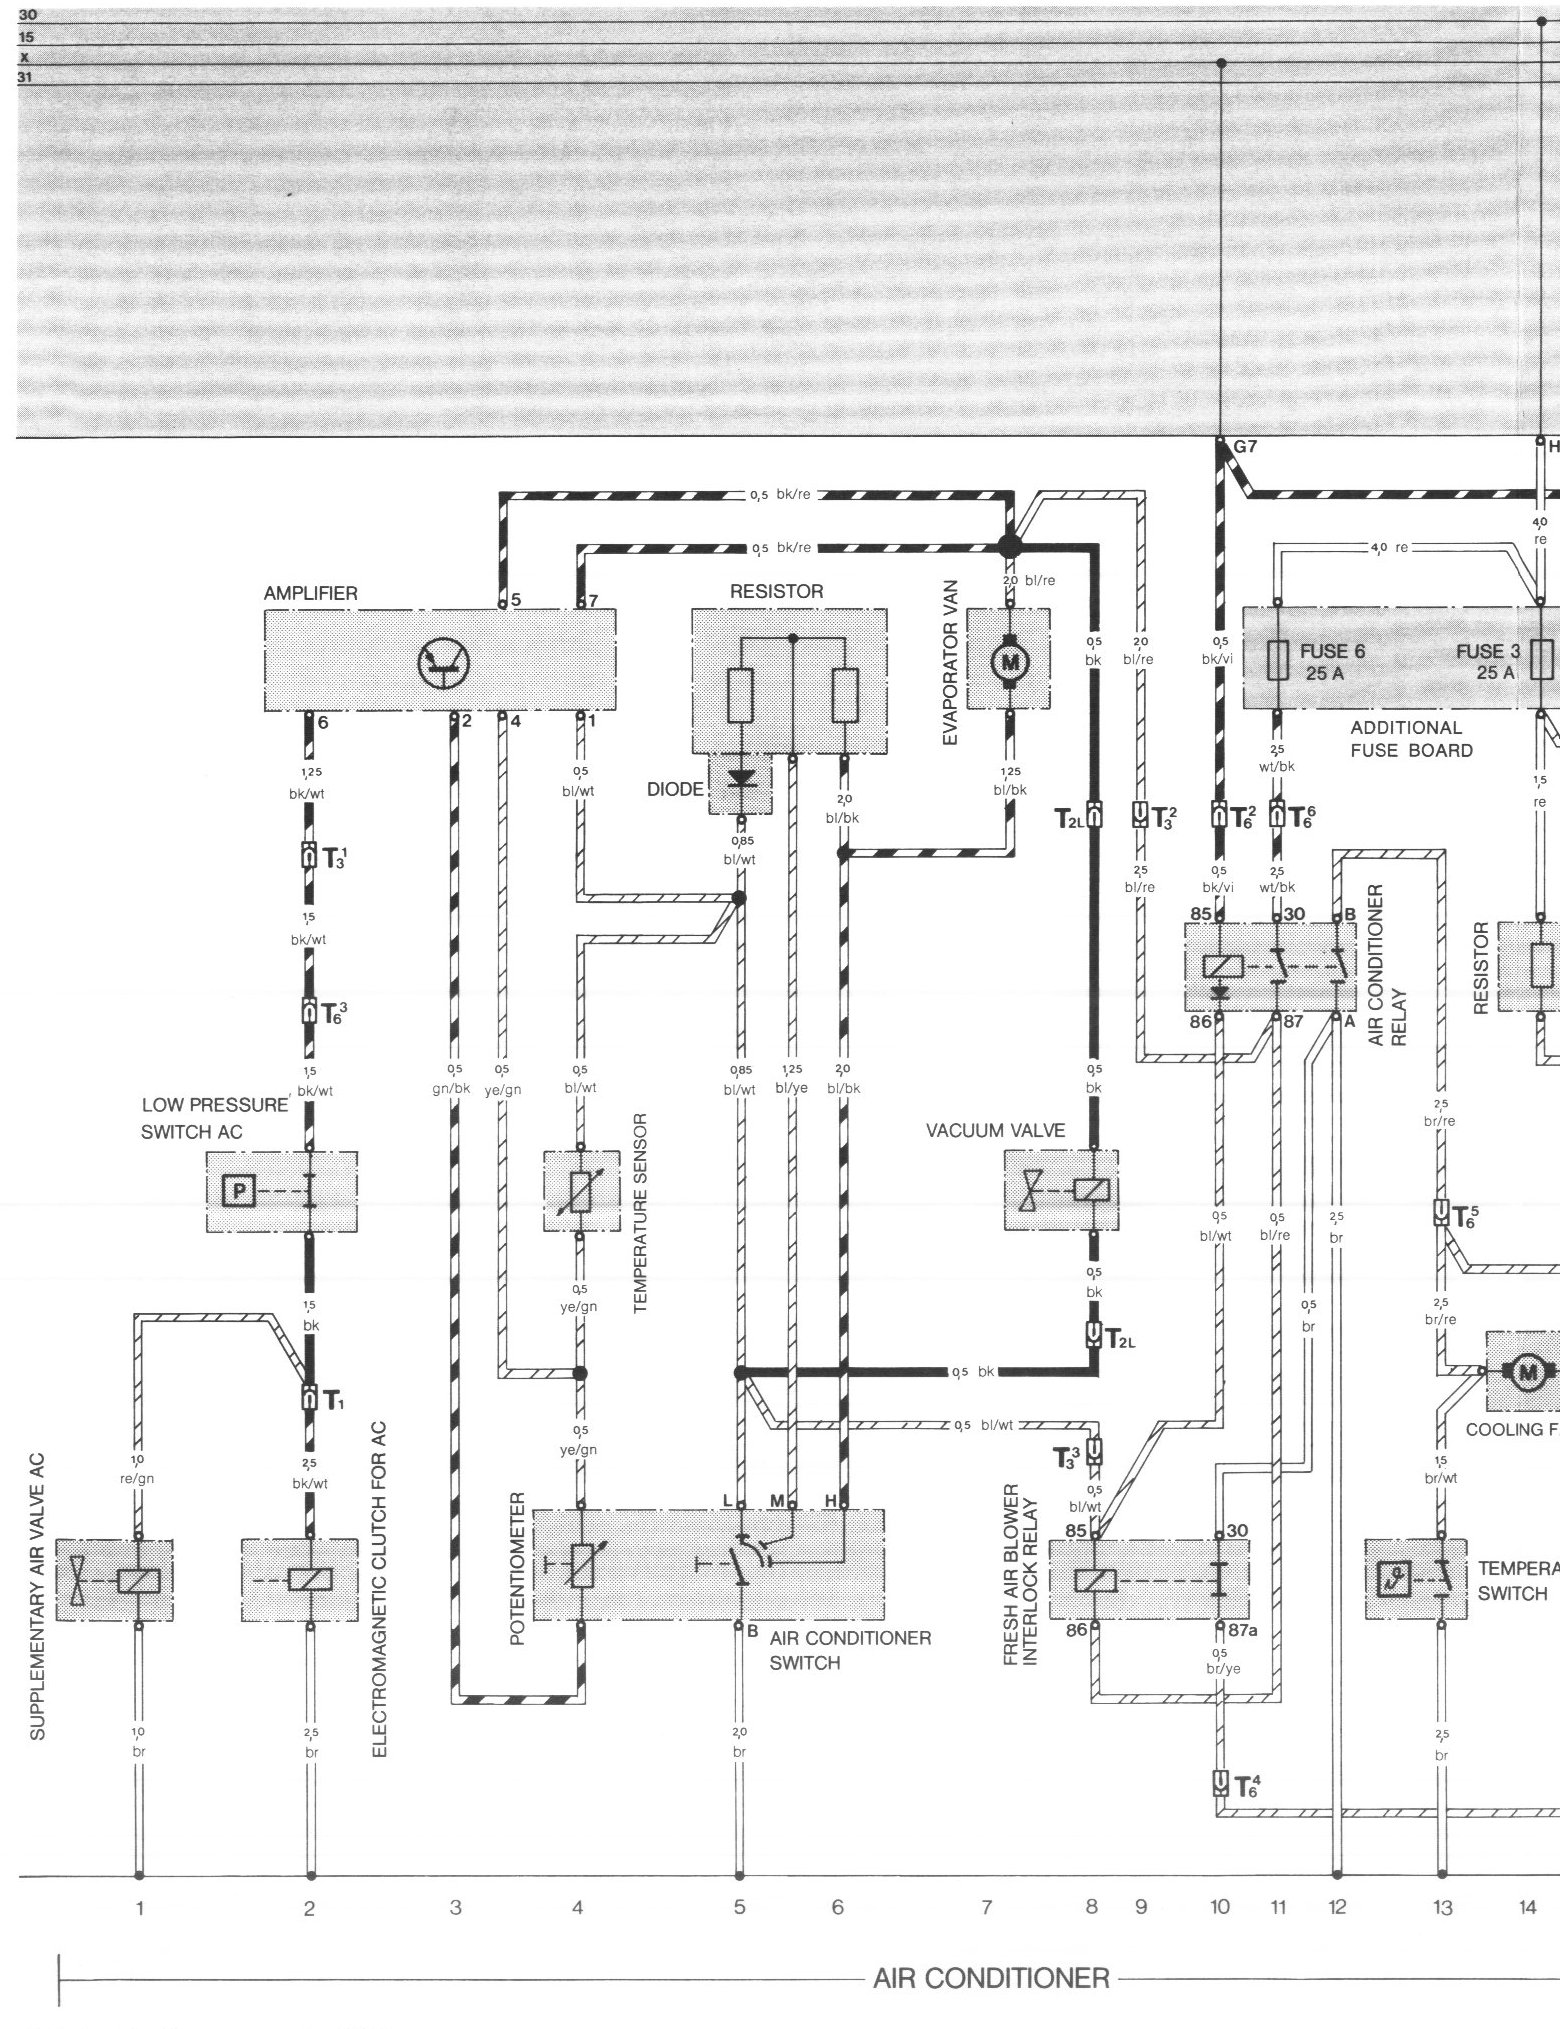 944_84_AC_1 pelican parts porsche 924 944 electrical diagrams Hayden Electric Fan Wiring Diagram at readyjetset.co